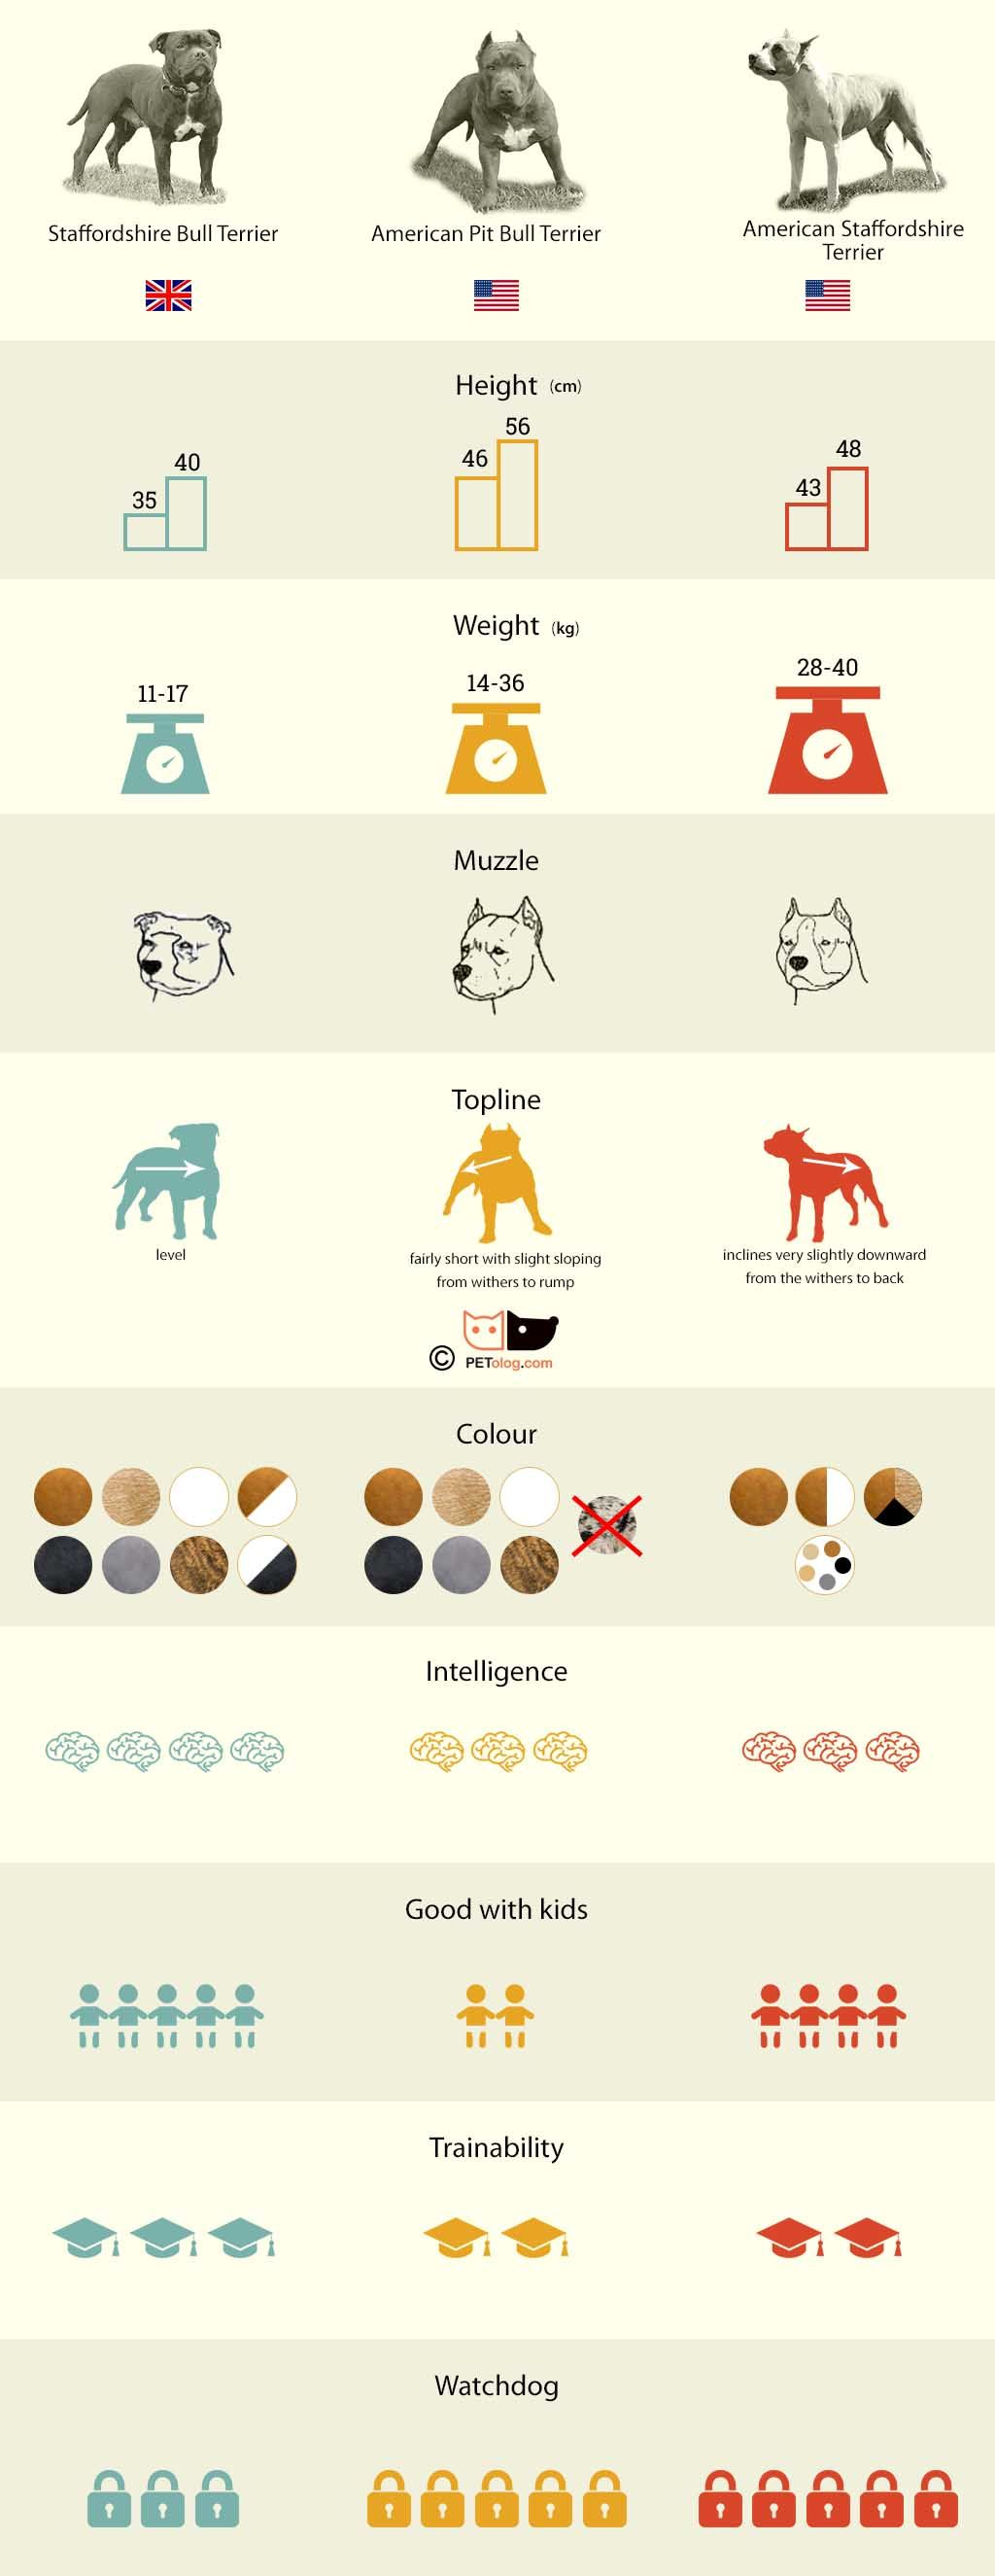 Top 4 muscle building exercises for dogs infographic muscles top 4 muscle building exercises for dogs infographic muscles and building nvjuhfo Choice Image